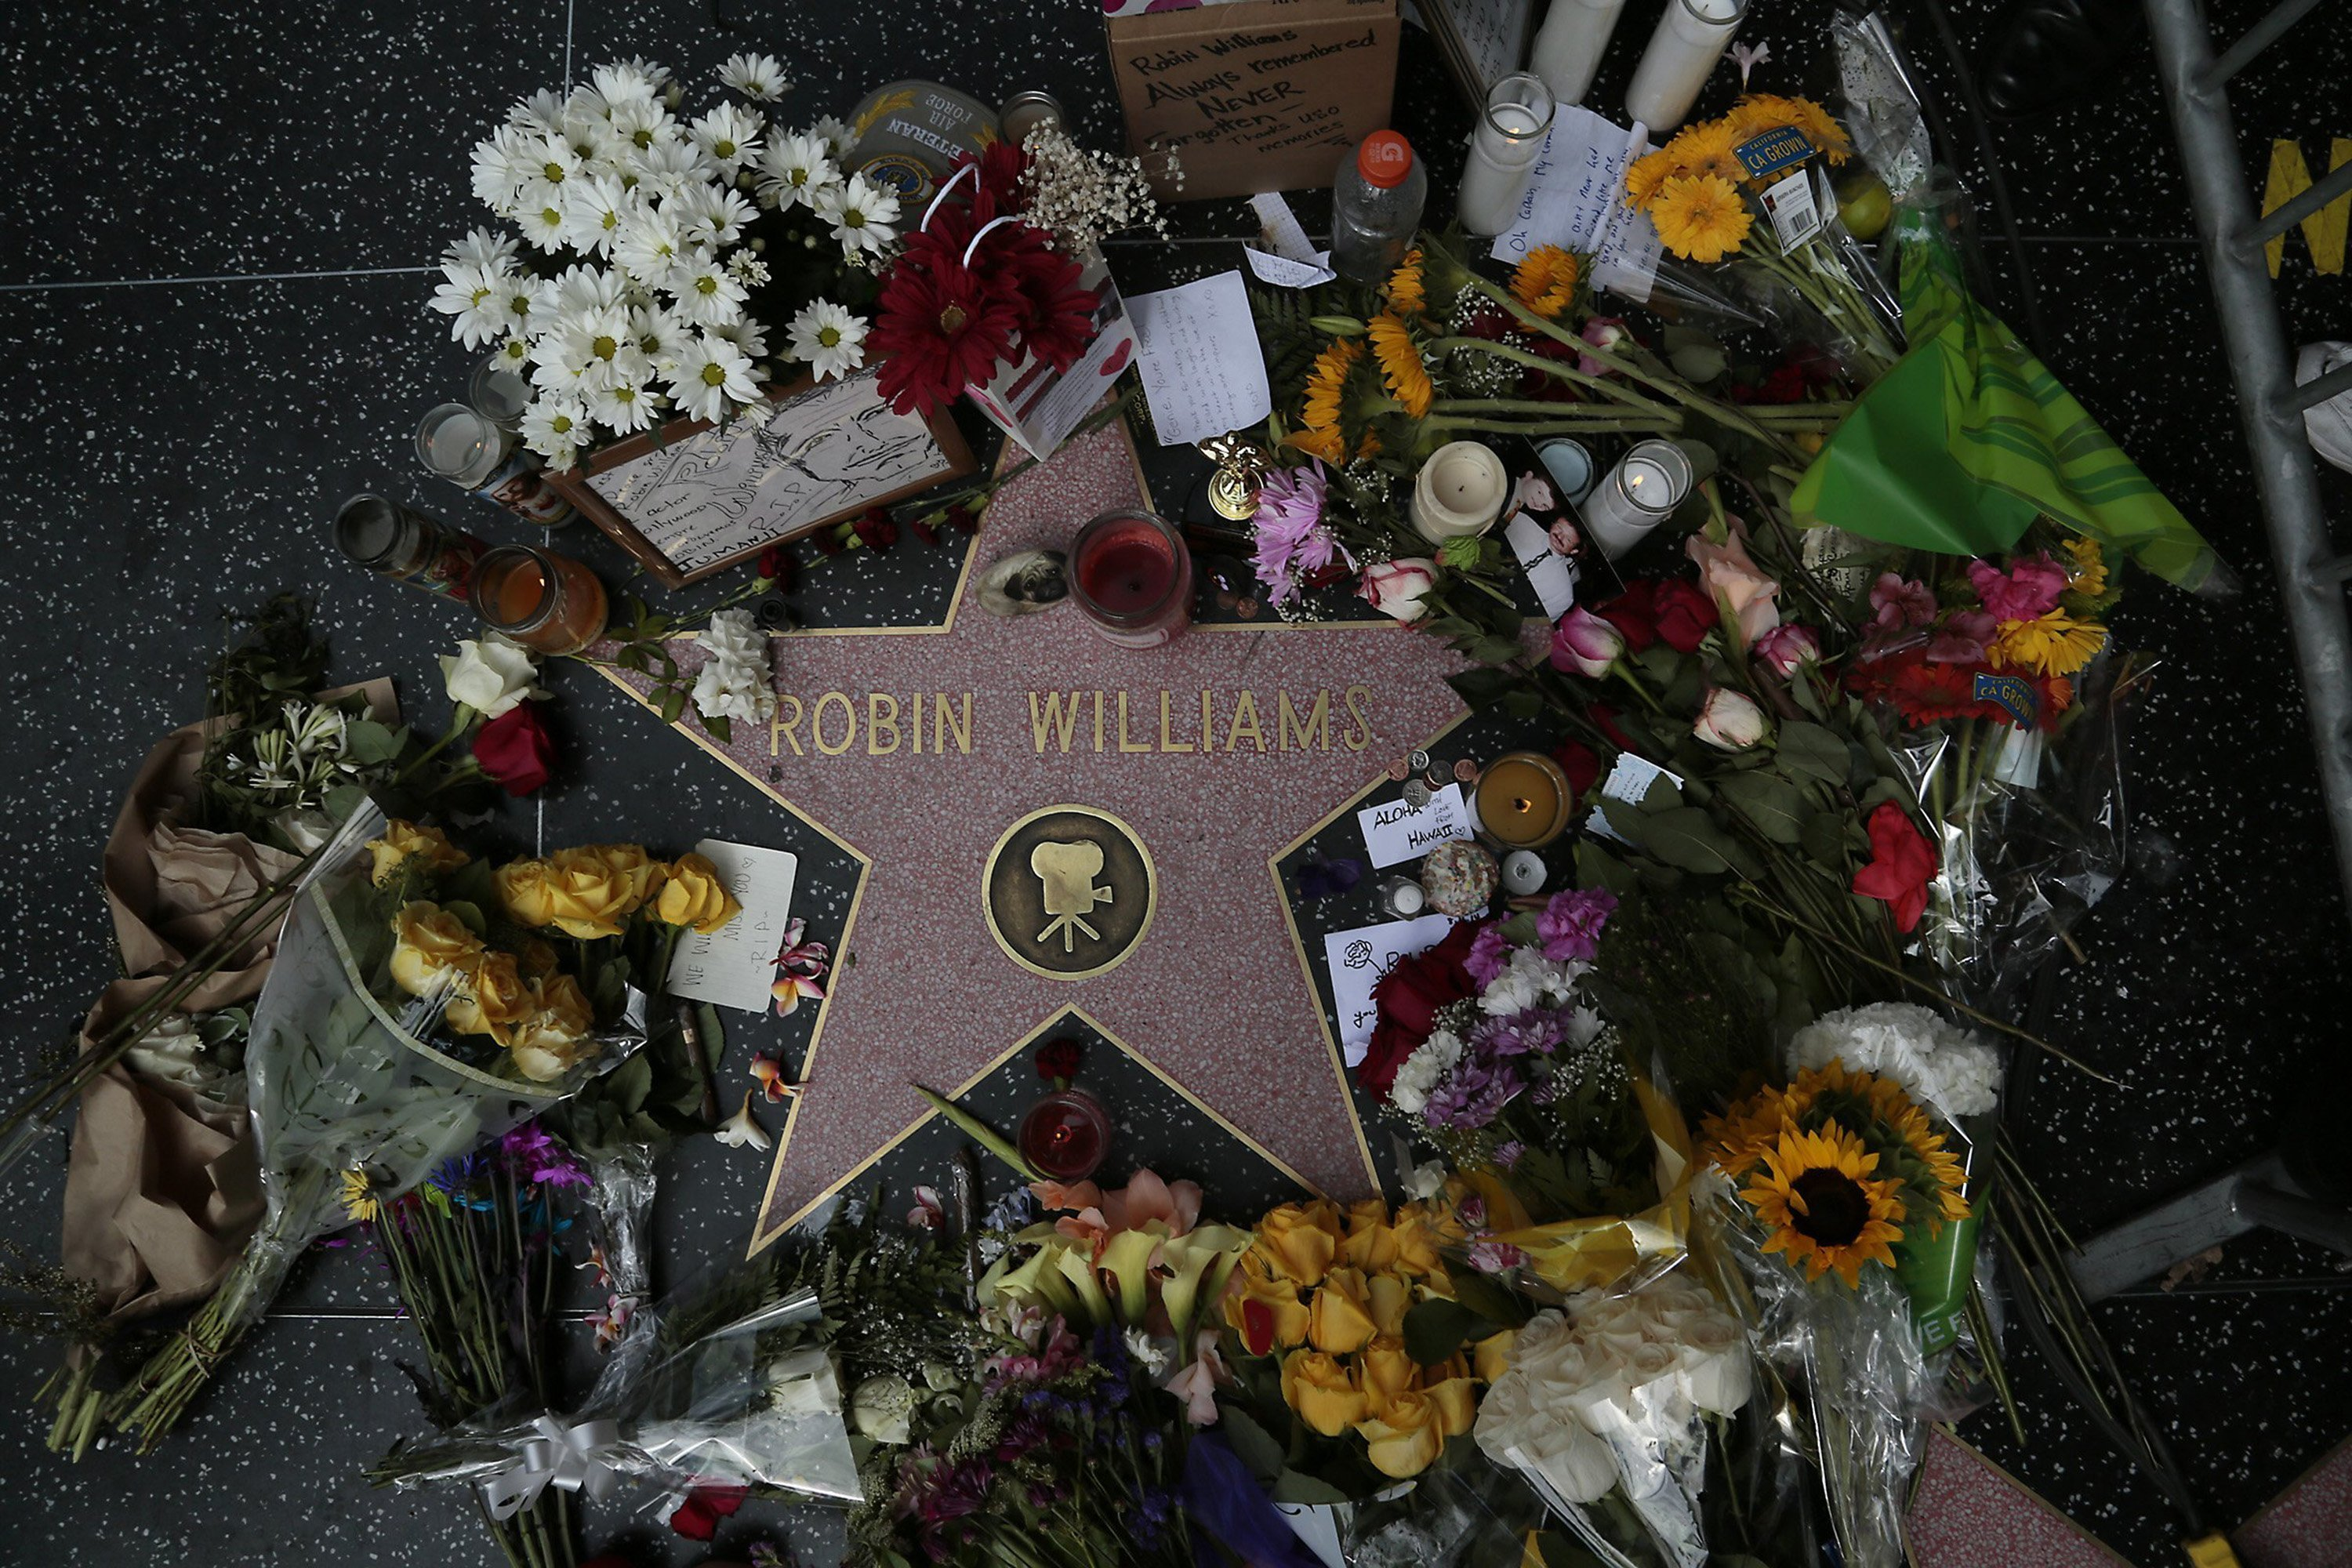 Robin Williams memorials